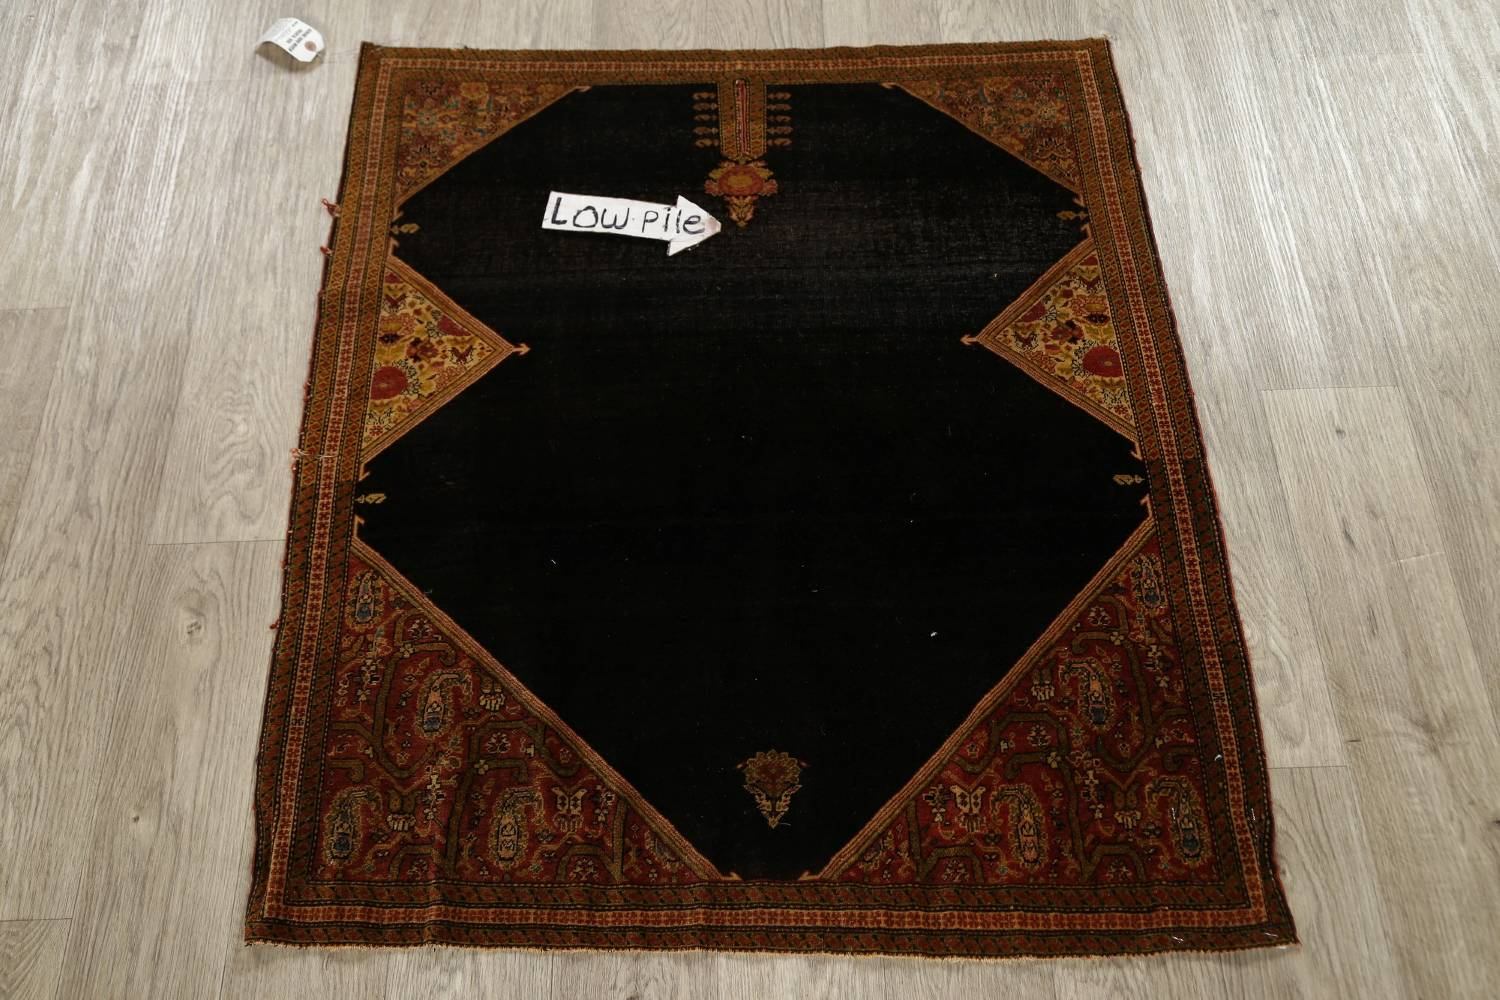 Pre-1900 Vegetable Dye Sarouk Farahan Persian Hand-Knotted 3x3 Square Rug image 7